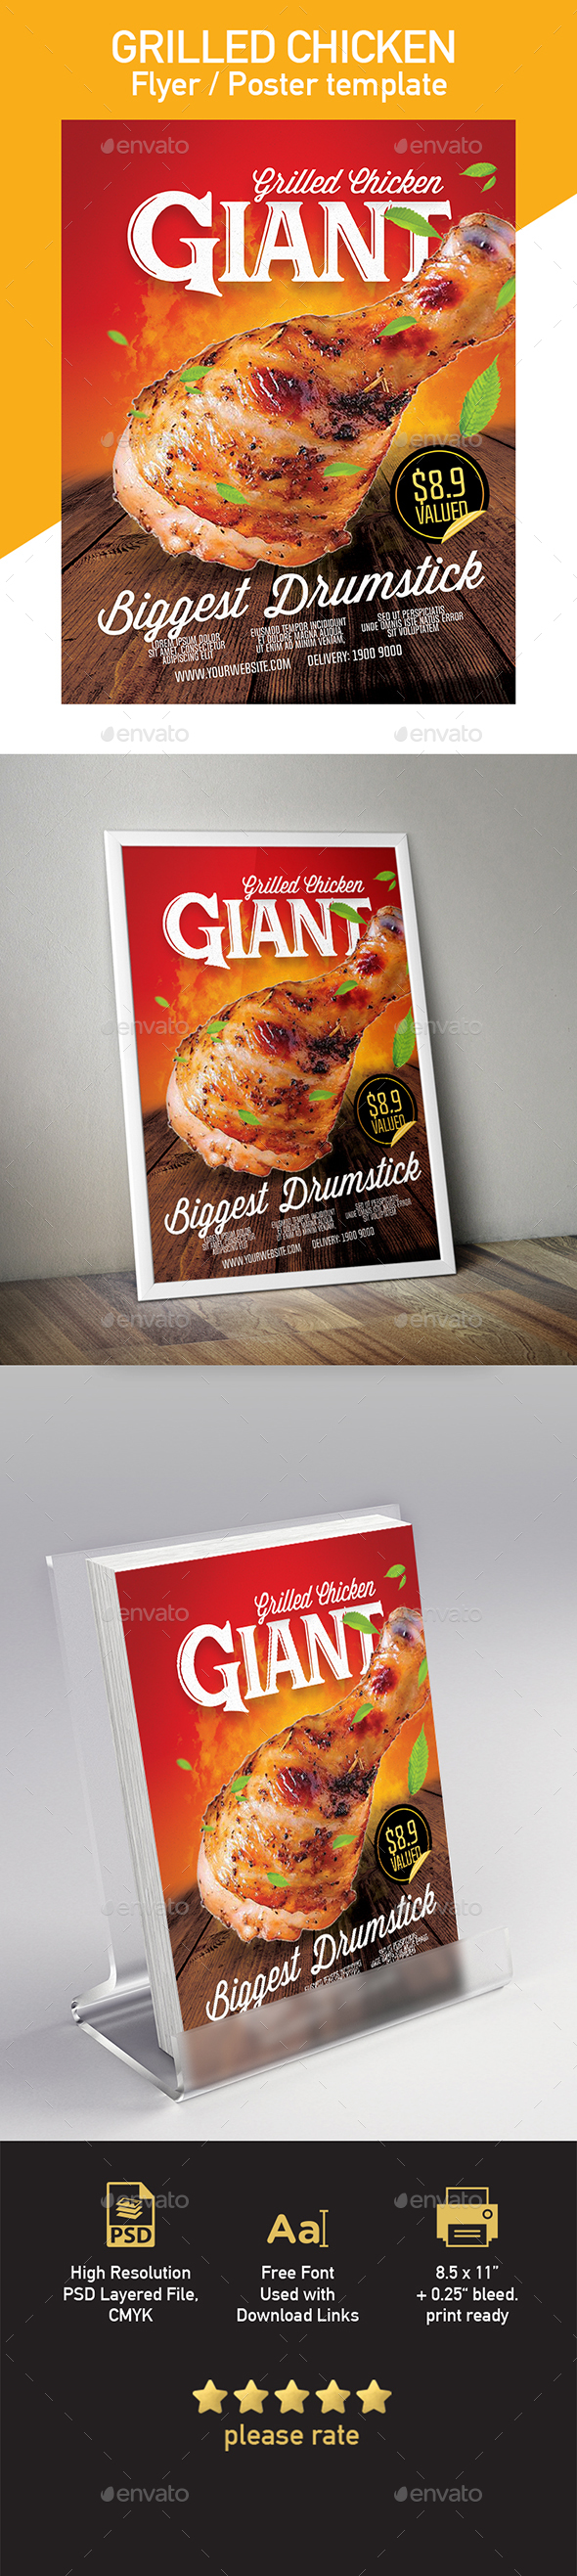 Grilled Chicken Template for Flyer / Poster - Restaurant Flyers